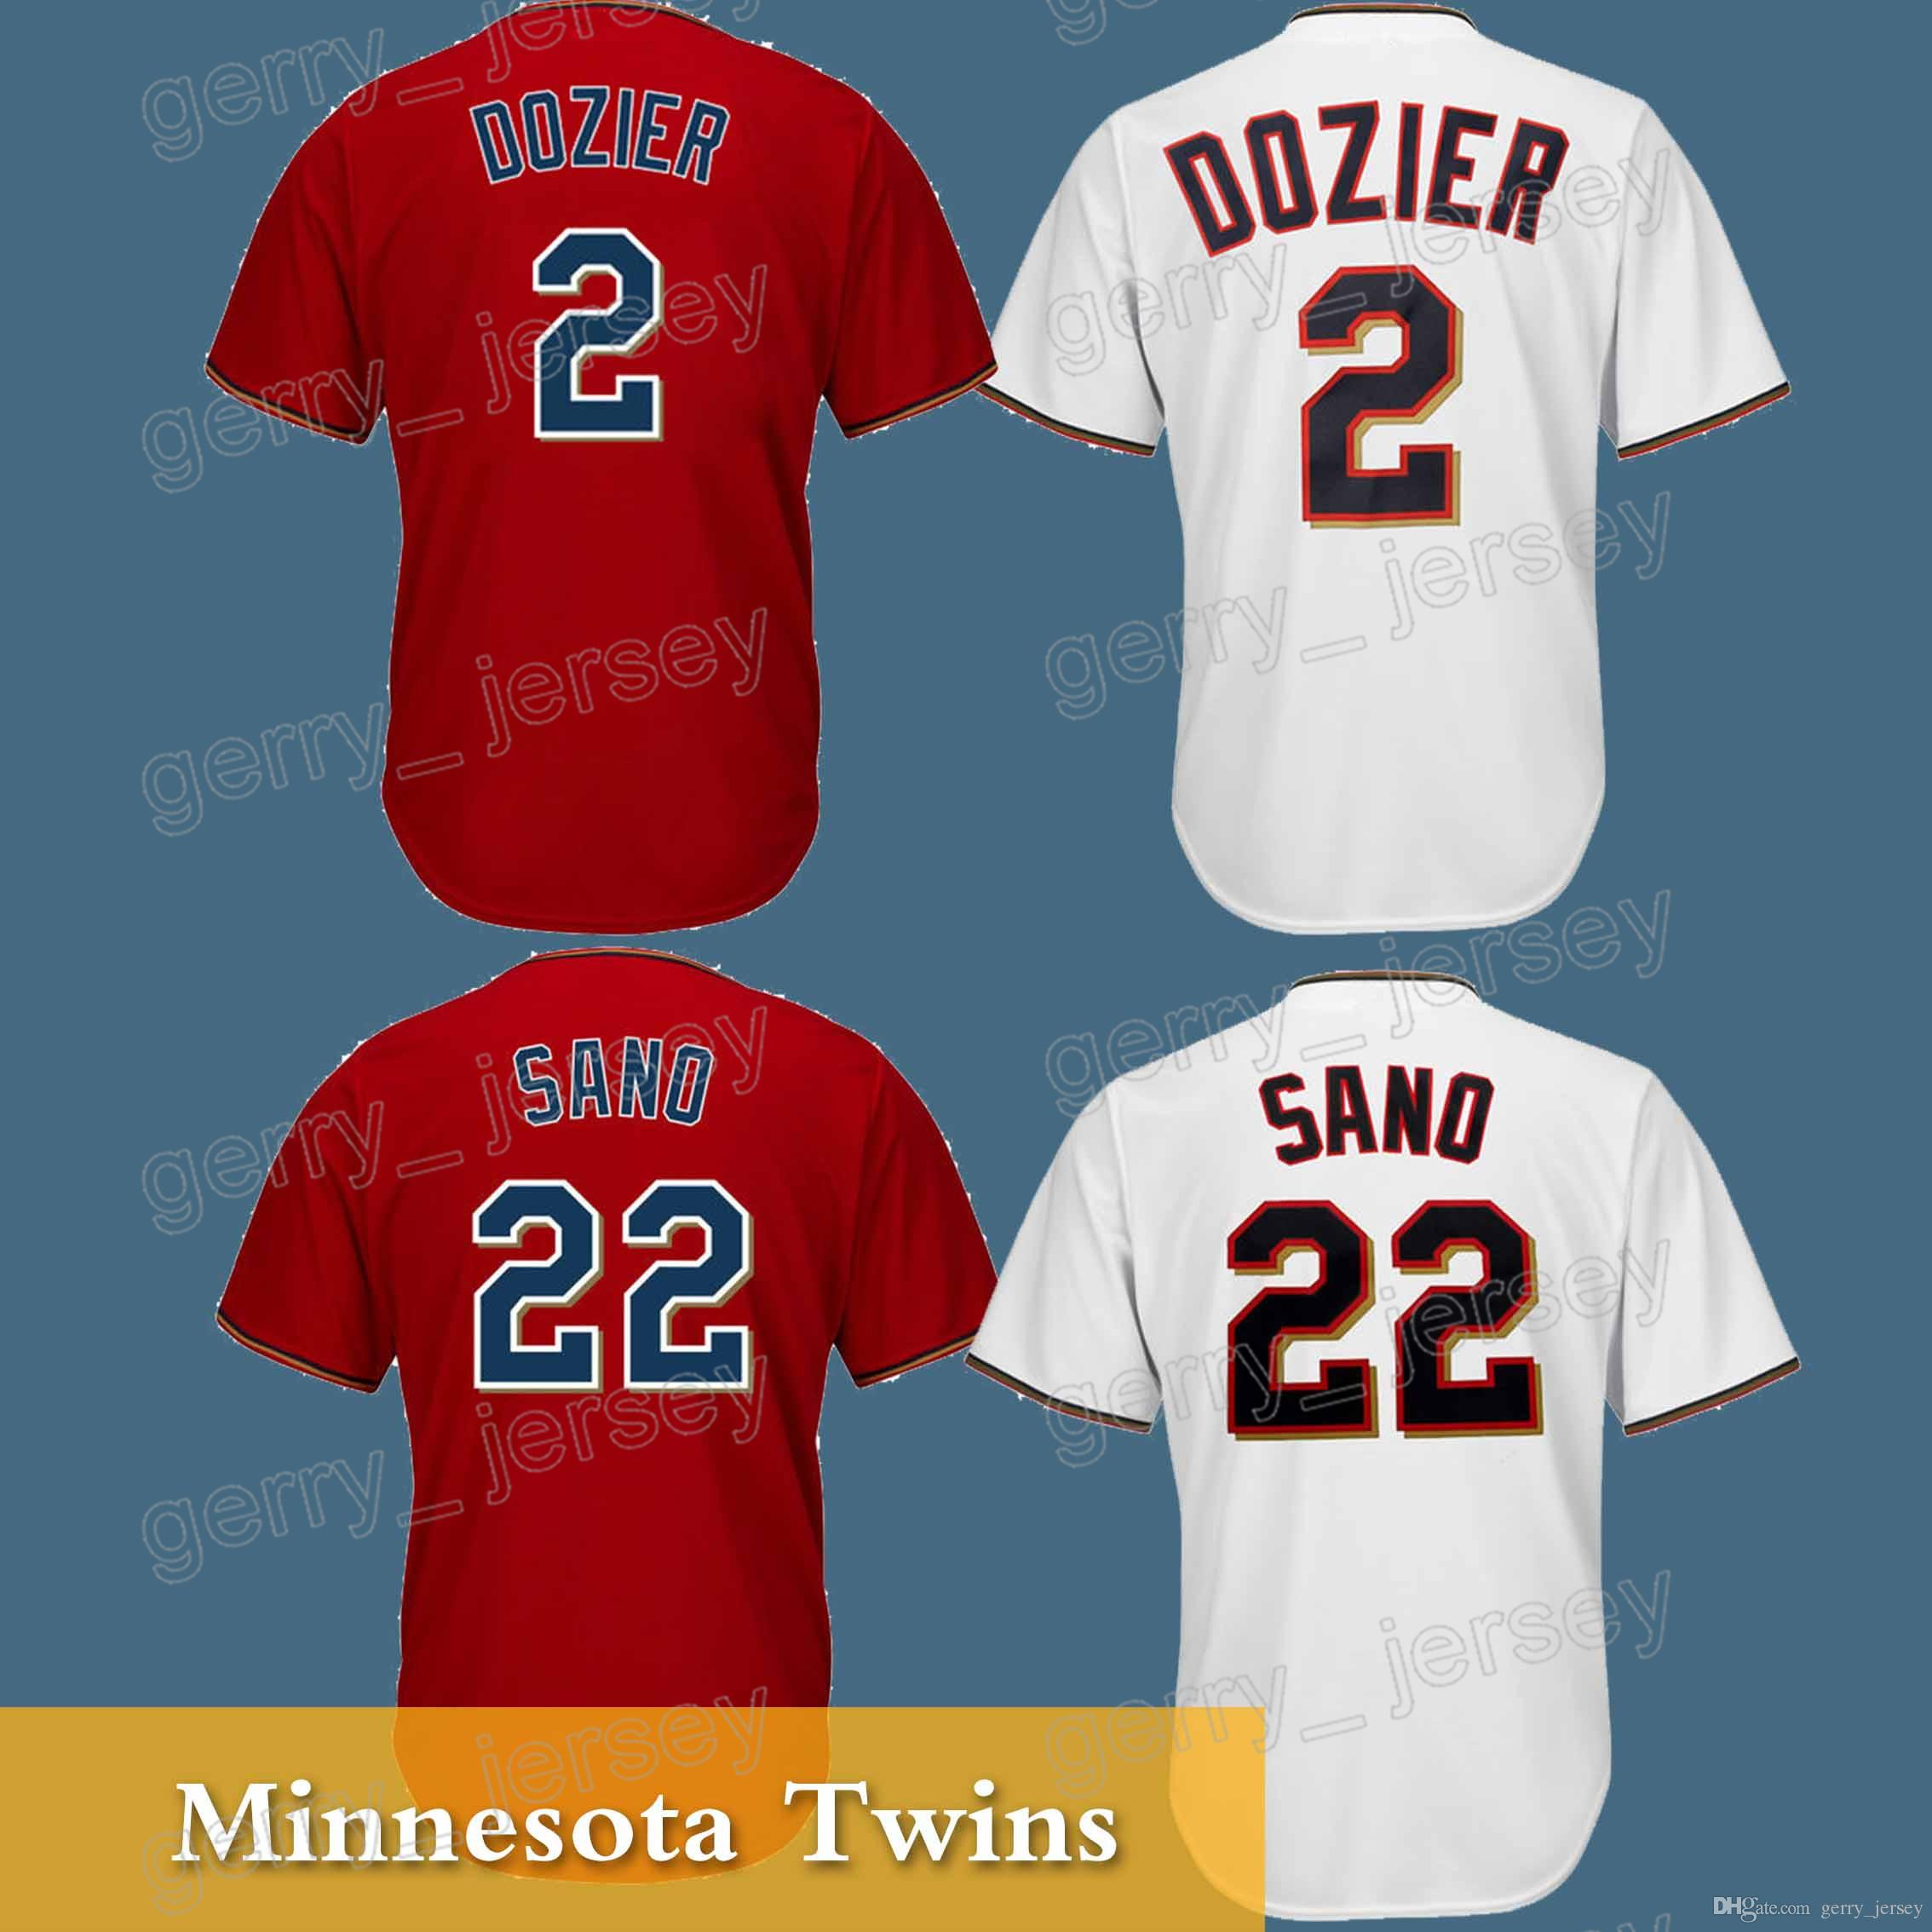 6ed2767d2 ... spain minnesota twins 2 brian dozier jersey 18 19 22 miguel sano high  quality hot sale